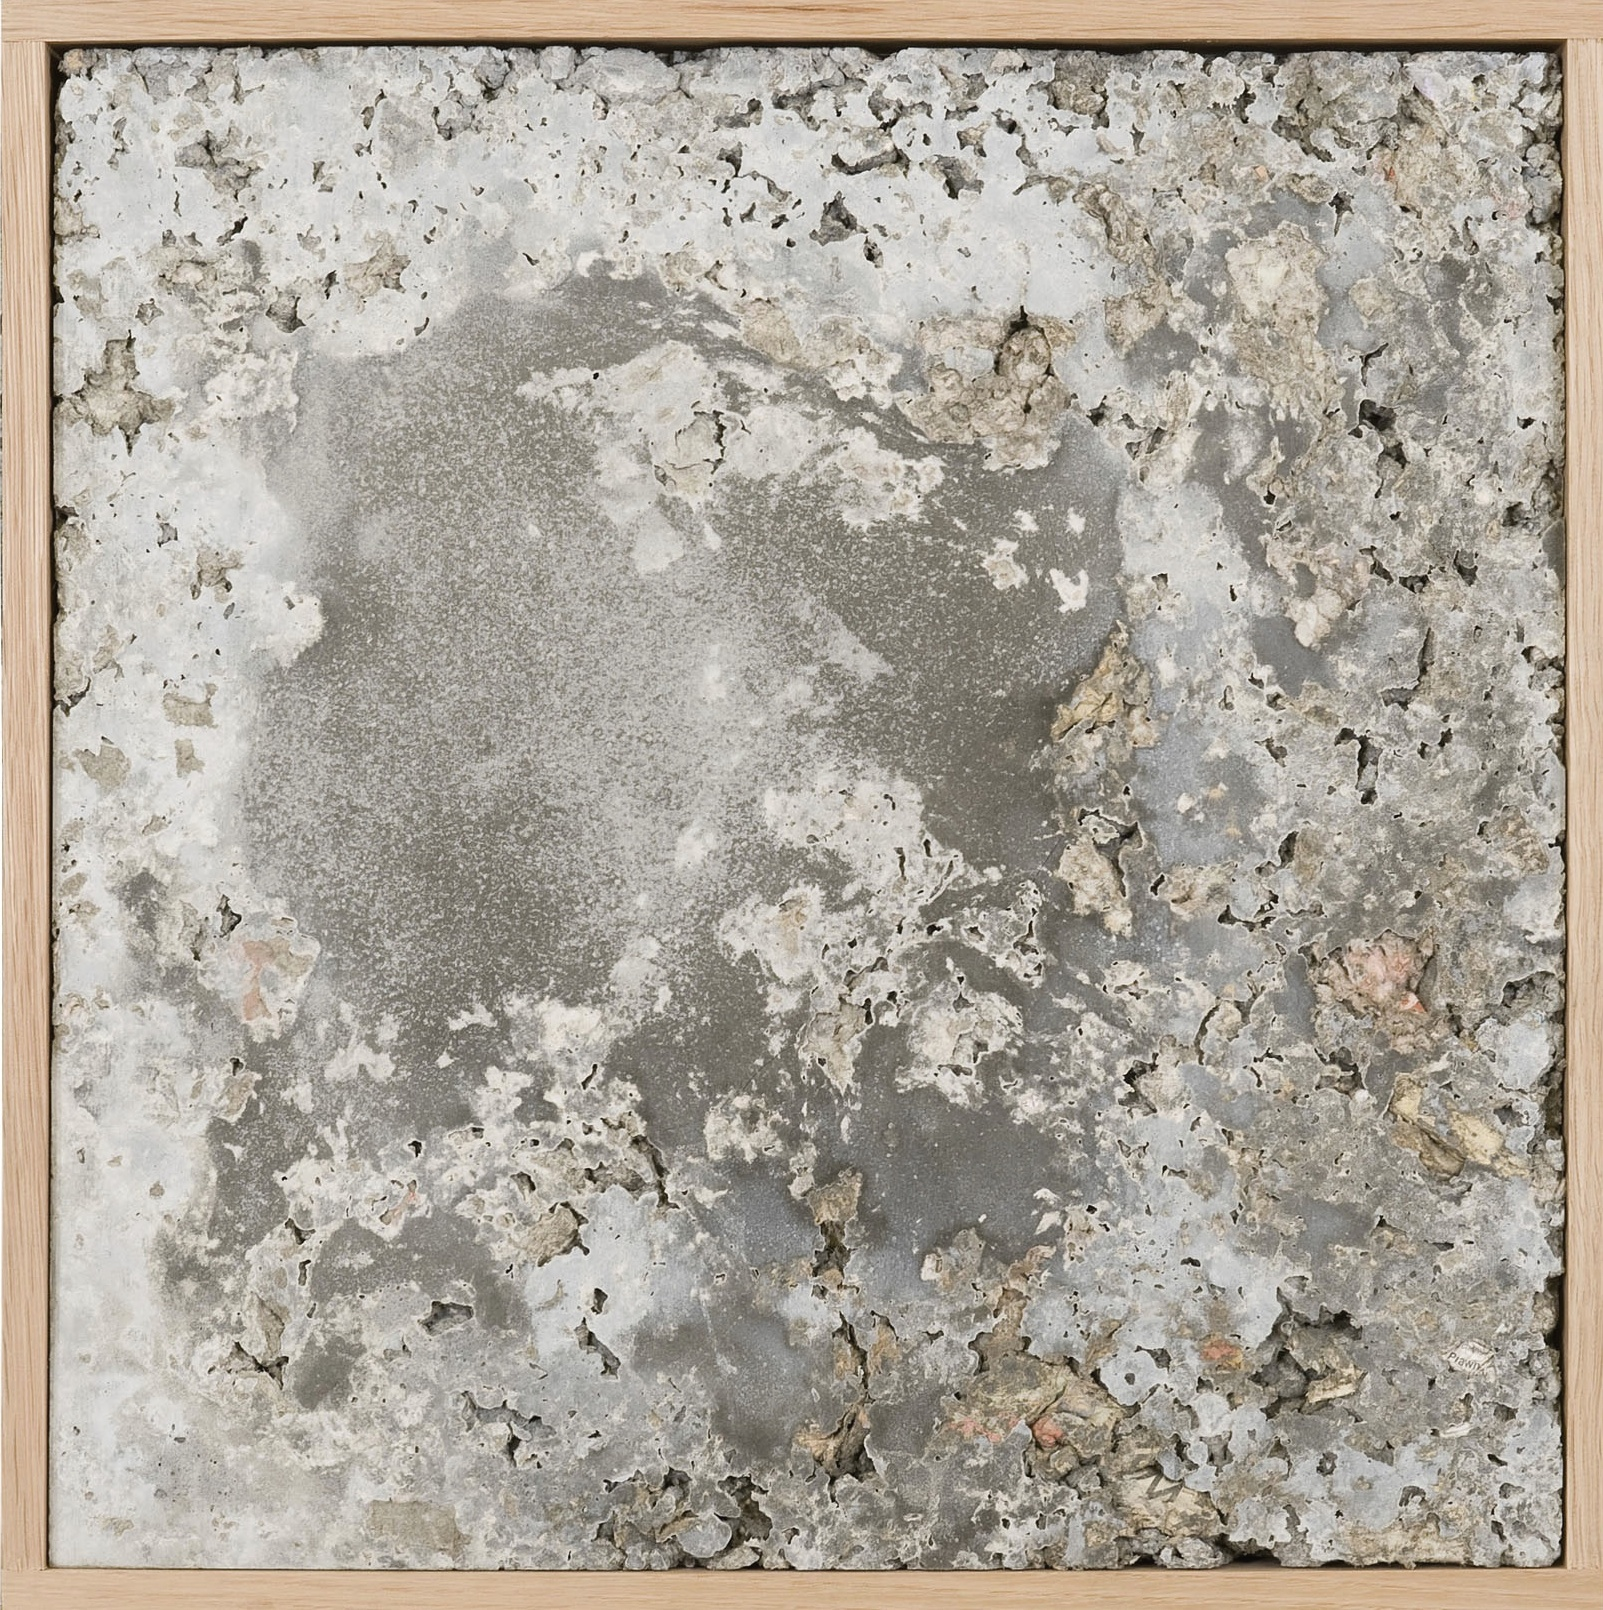 OSCAR TUAZON  UNTILED PAPERCRETE, 2010  CEMENT, PAPER AND WOOD  17 X 17 IN  43 X 43 CM  SOLD